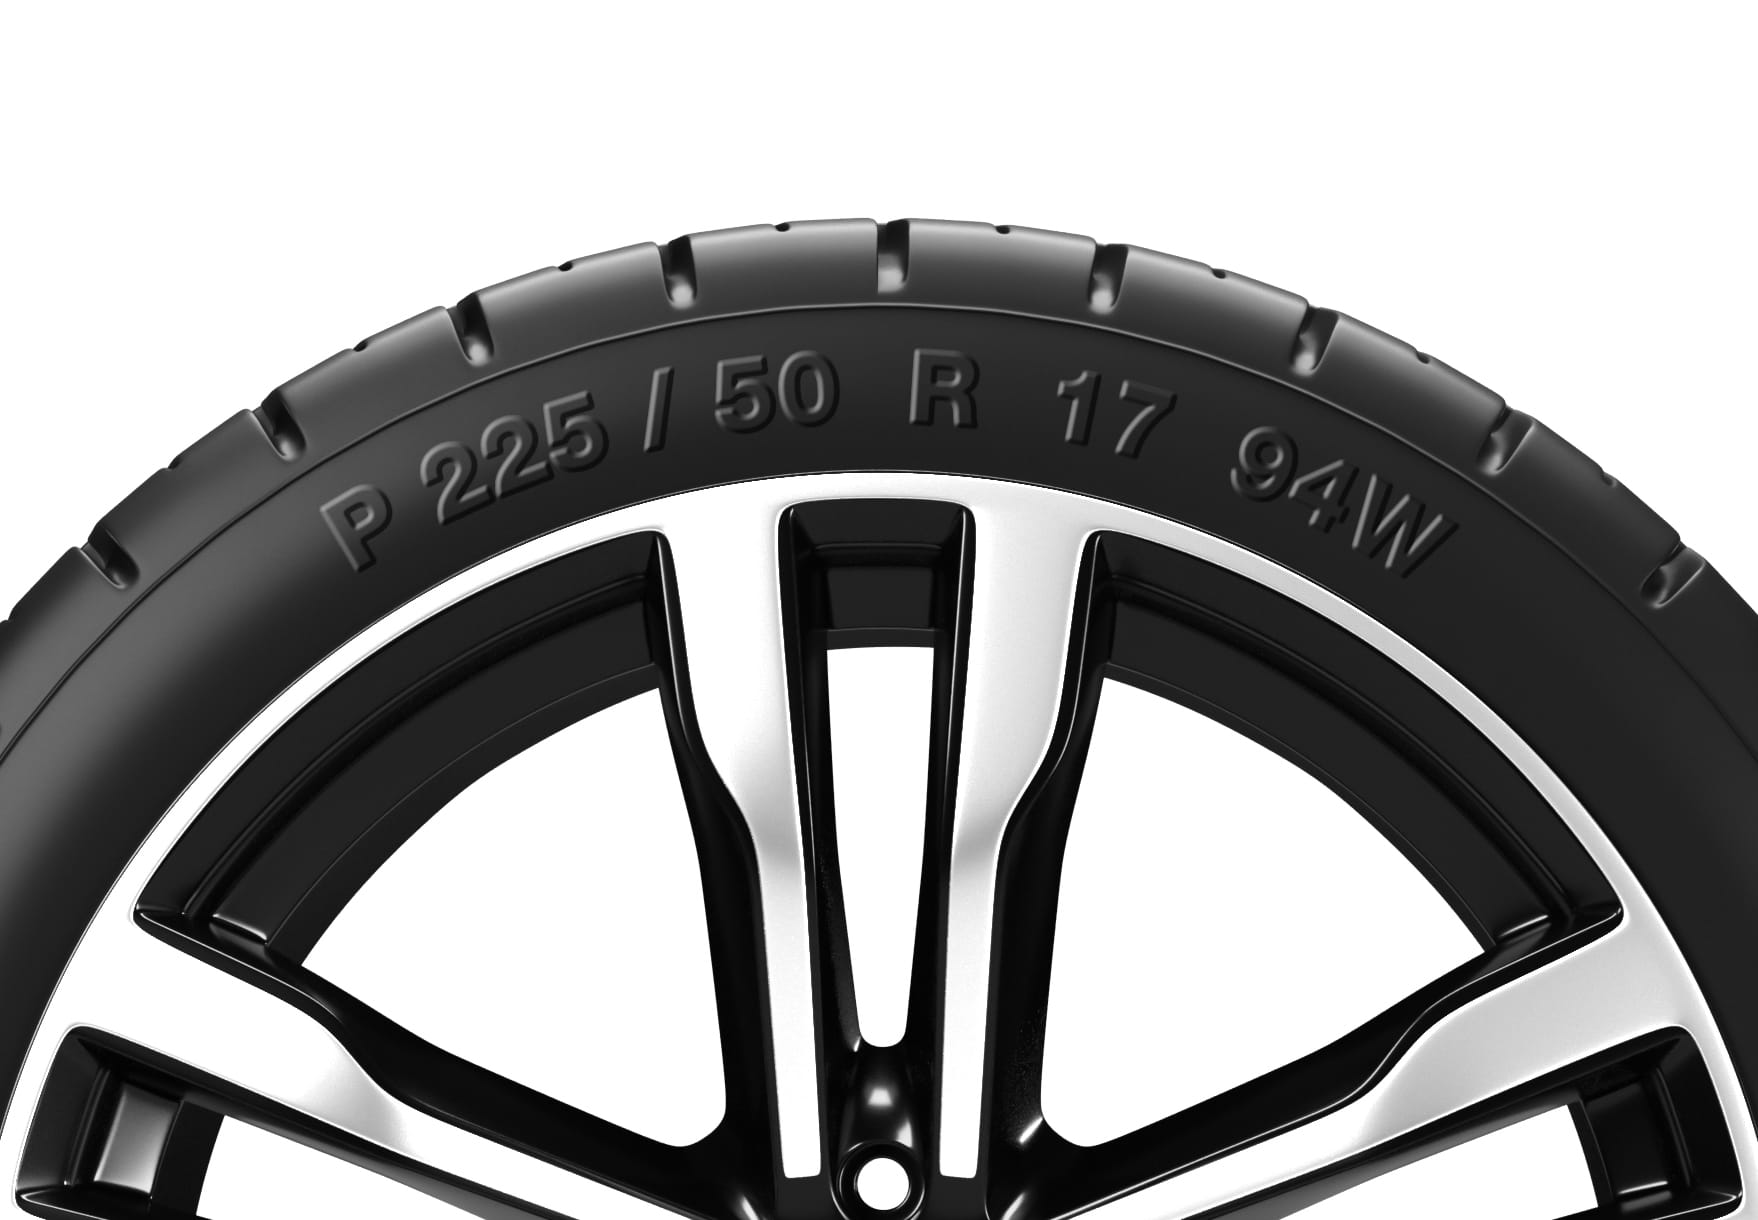 Tyre specification and sizes